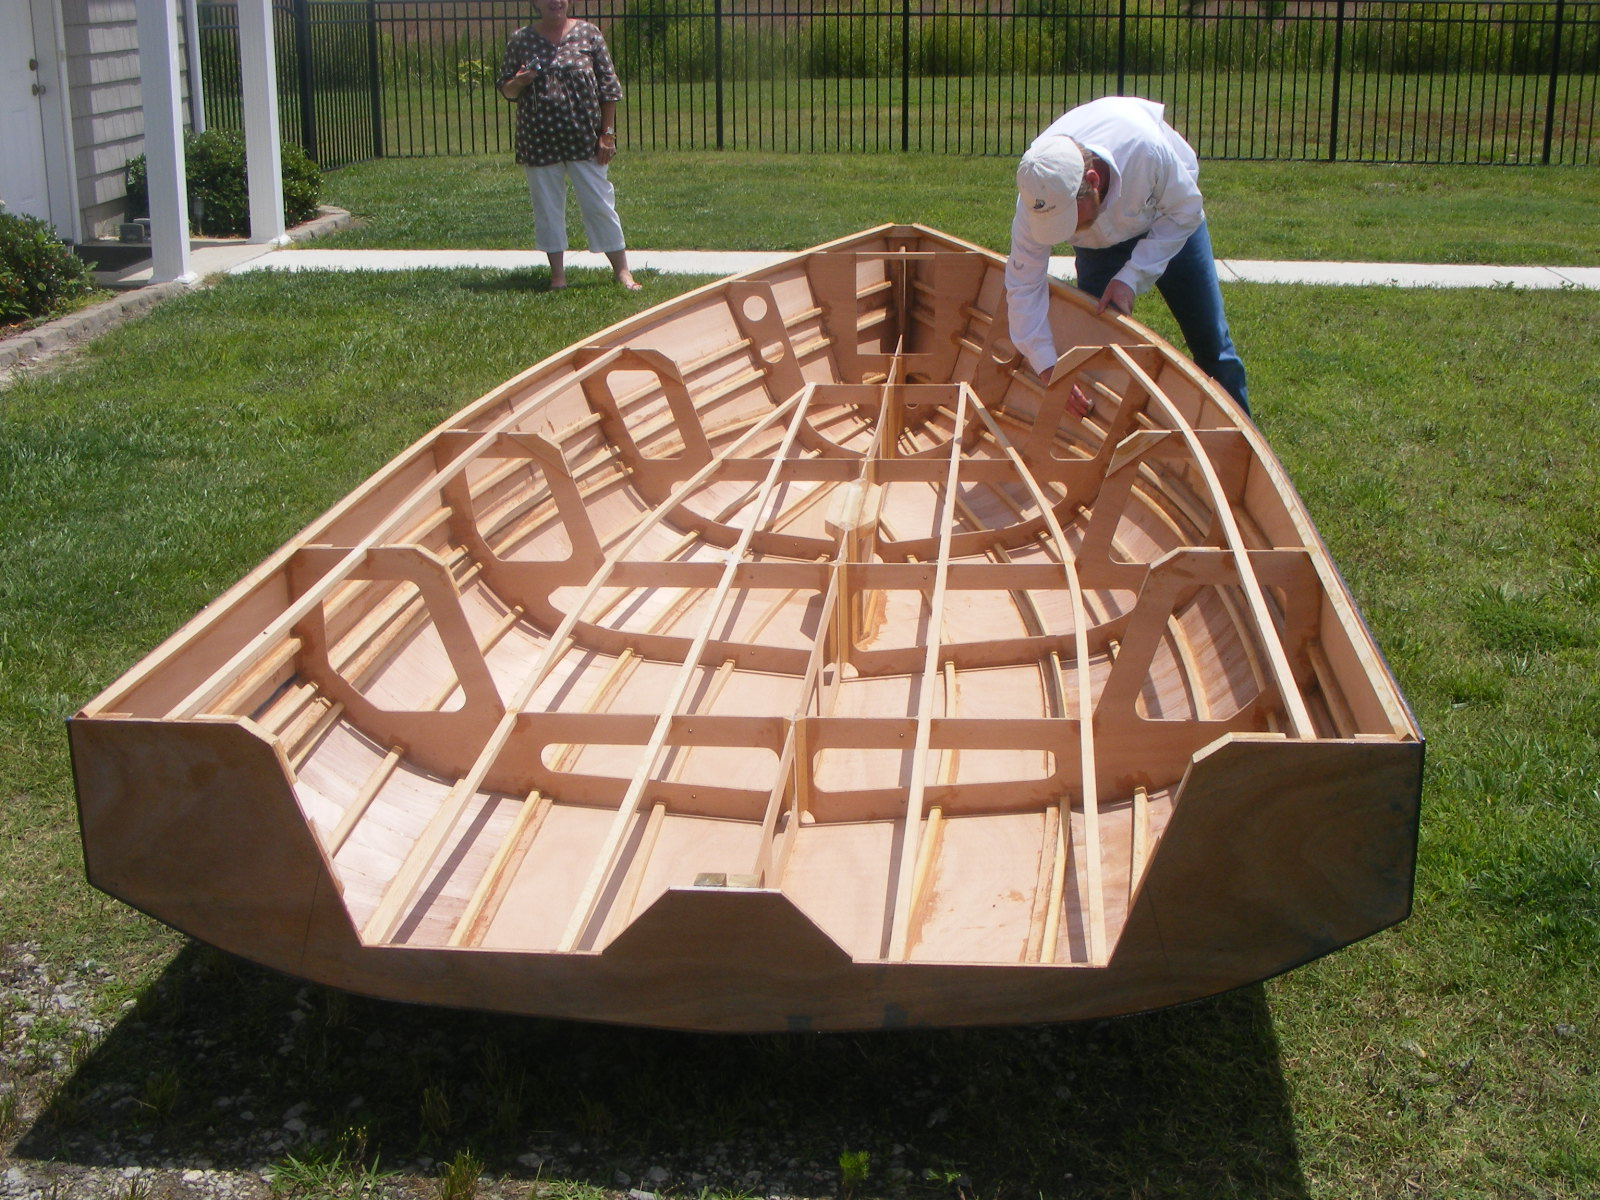 ... Boat Building Kits Plans PDF Download – DIY Wooden Boat Plans